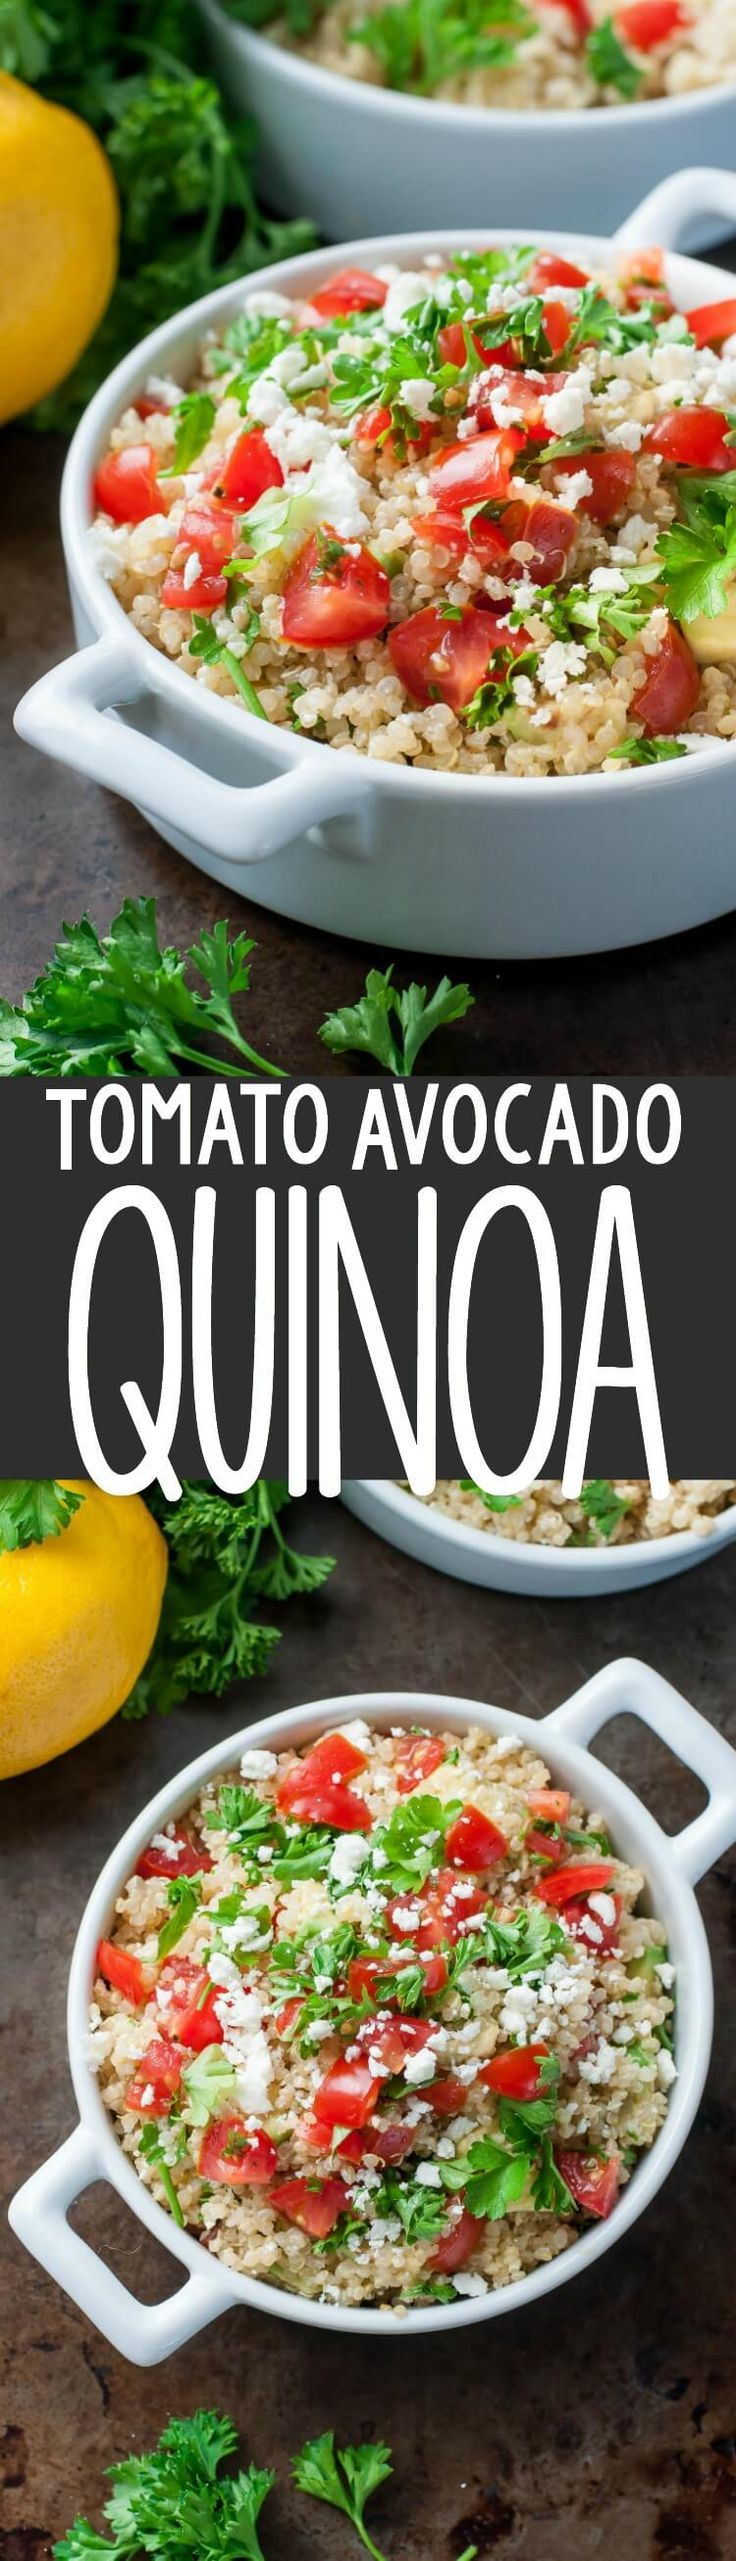 I'm obsessed with this healthy quinoa salad! Perfect for lunch on-the-go or as a healthy side dish